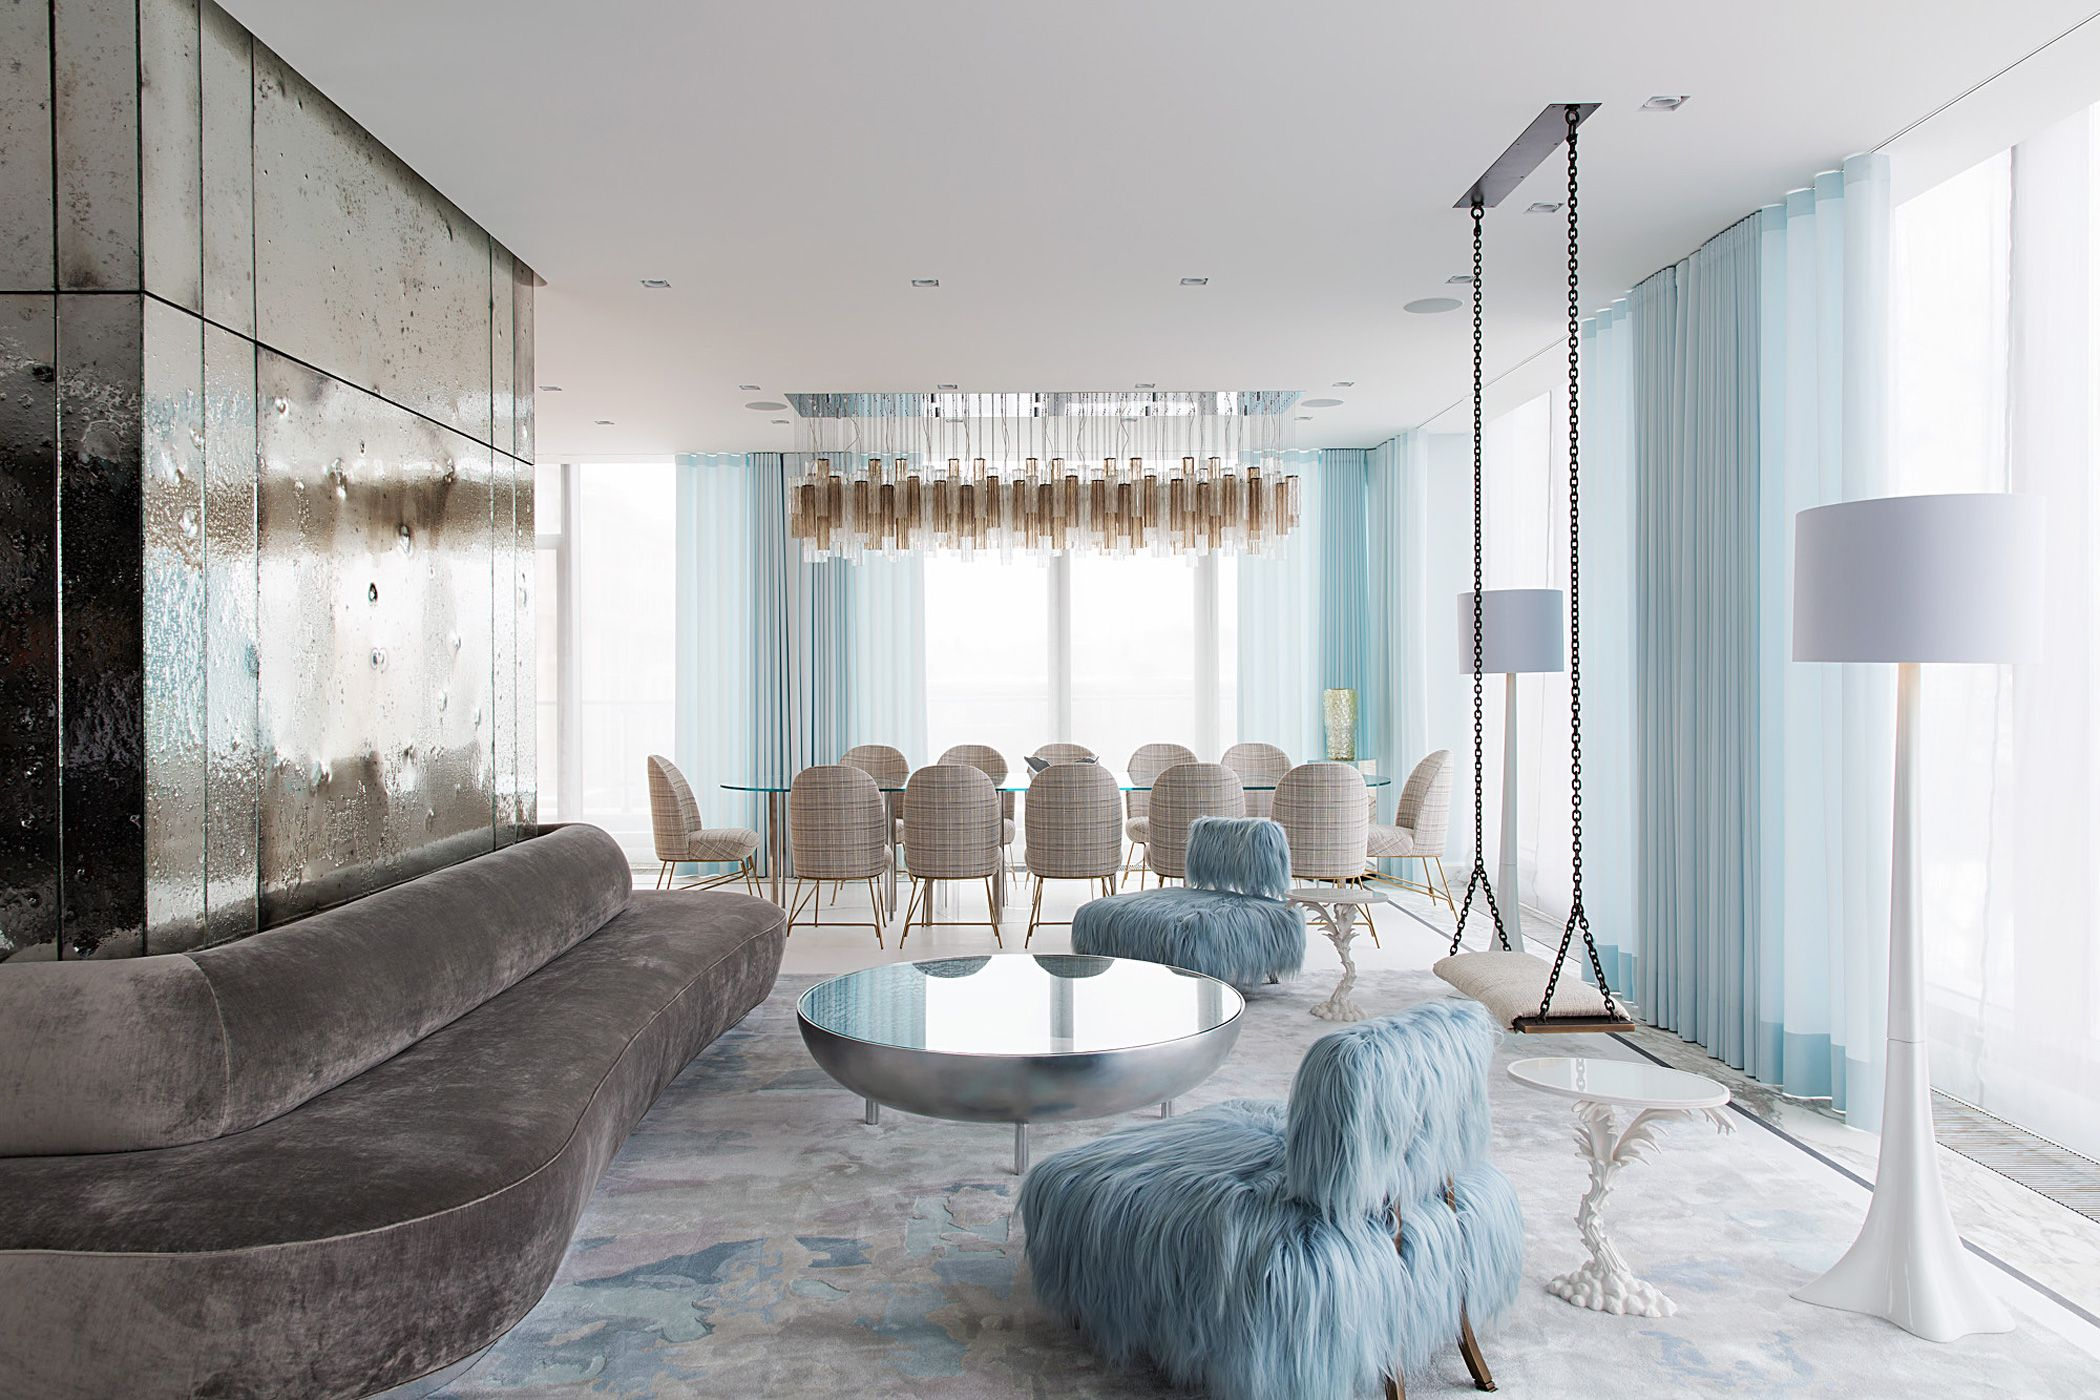 Beetley Chairs by Jaime Hayon for Sé, Young Tree Floor Lamp by Damien Langlois-Meurinne for Sé | Moscow Apartment by Art of Decor